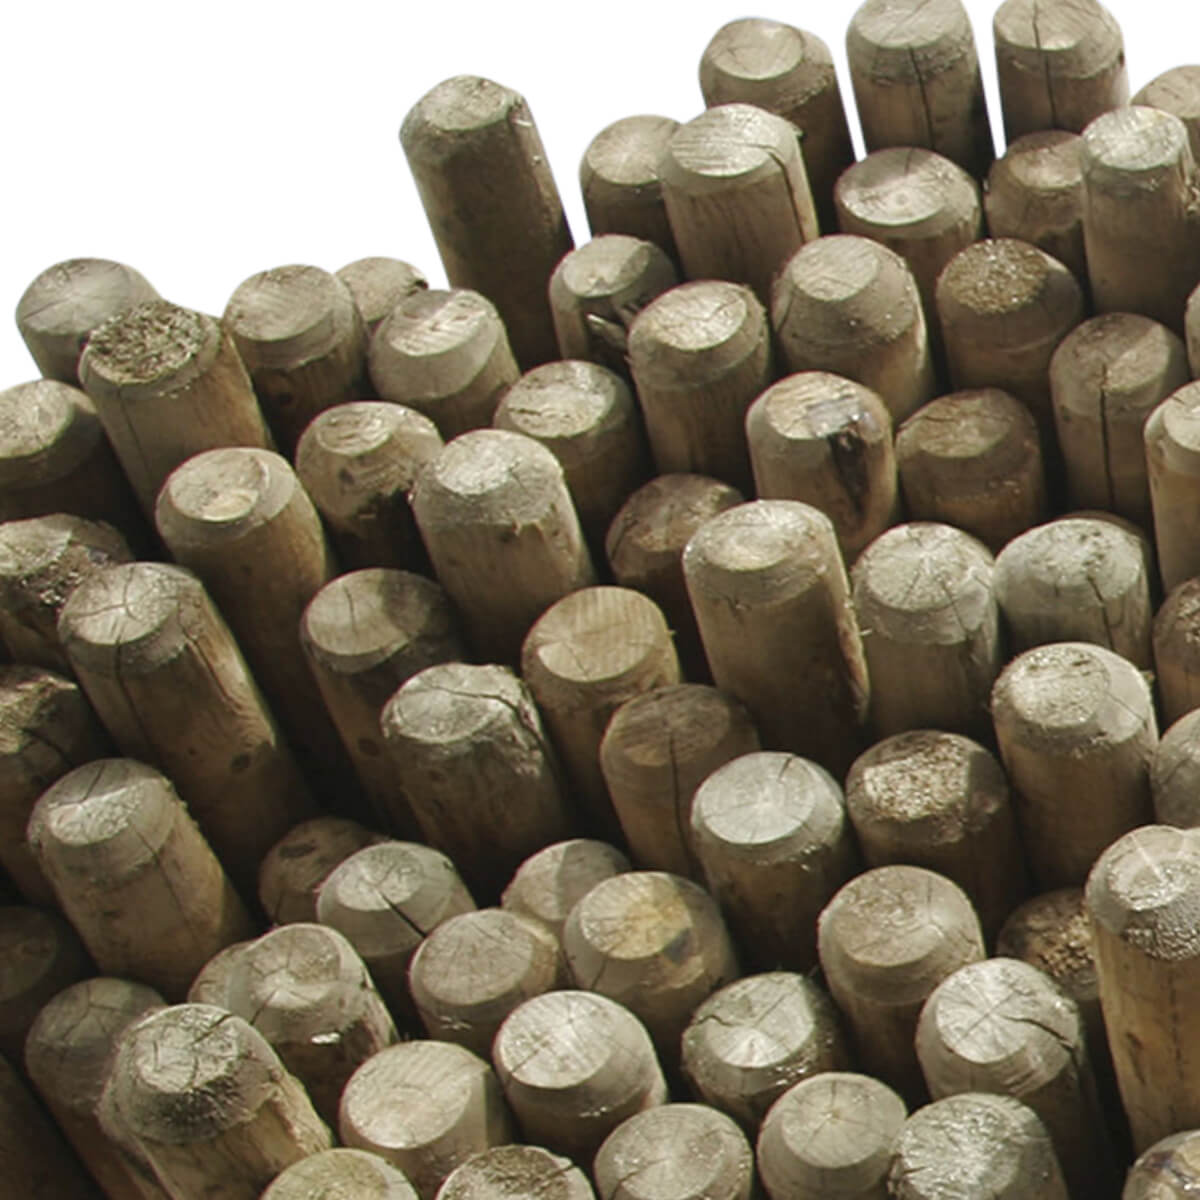 Dowelled Fence Poles Blunt - 5.25-in x 12-ft